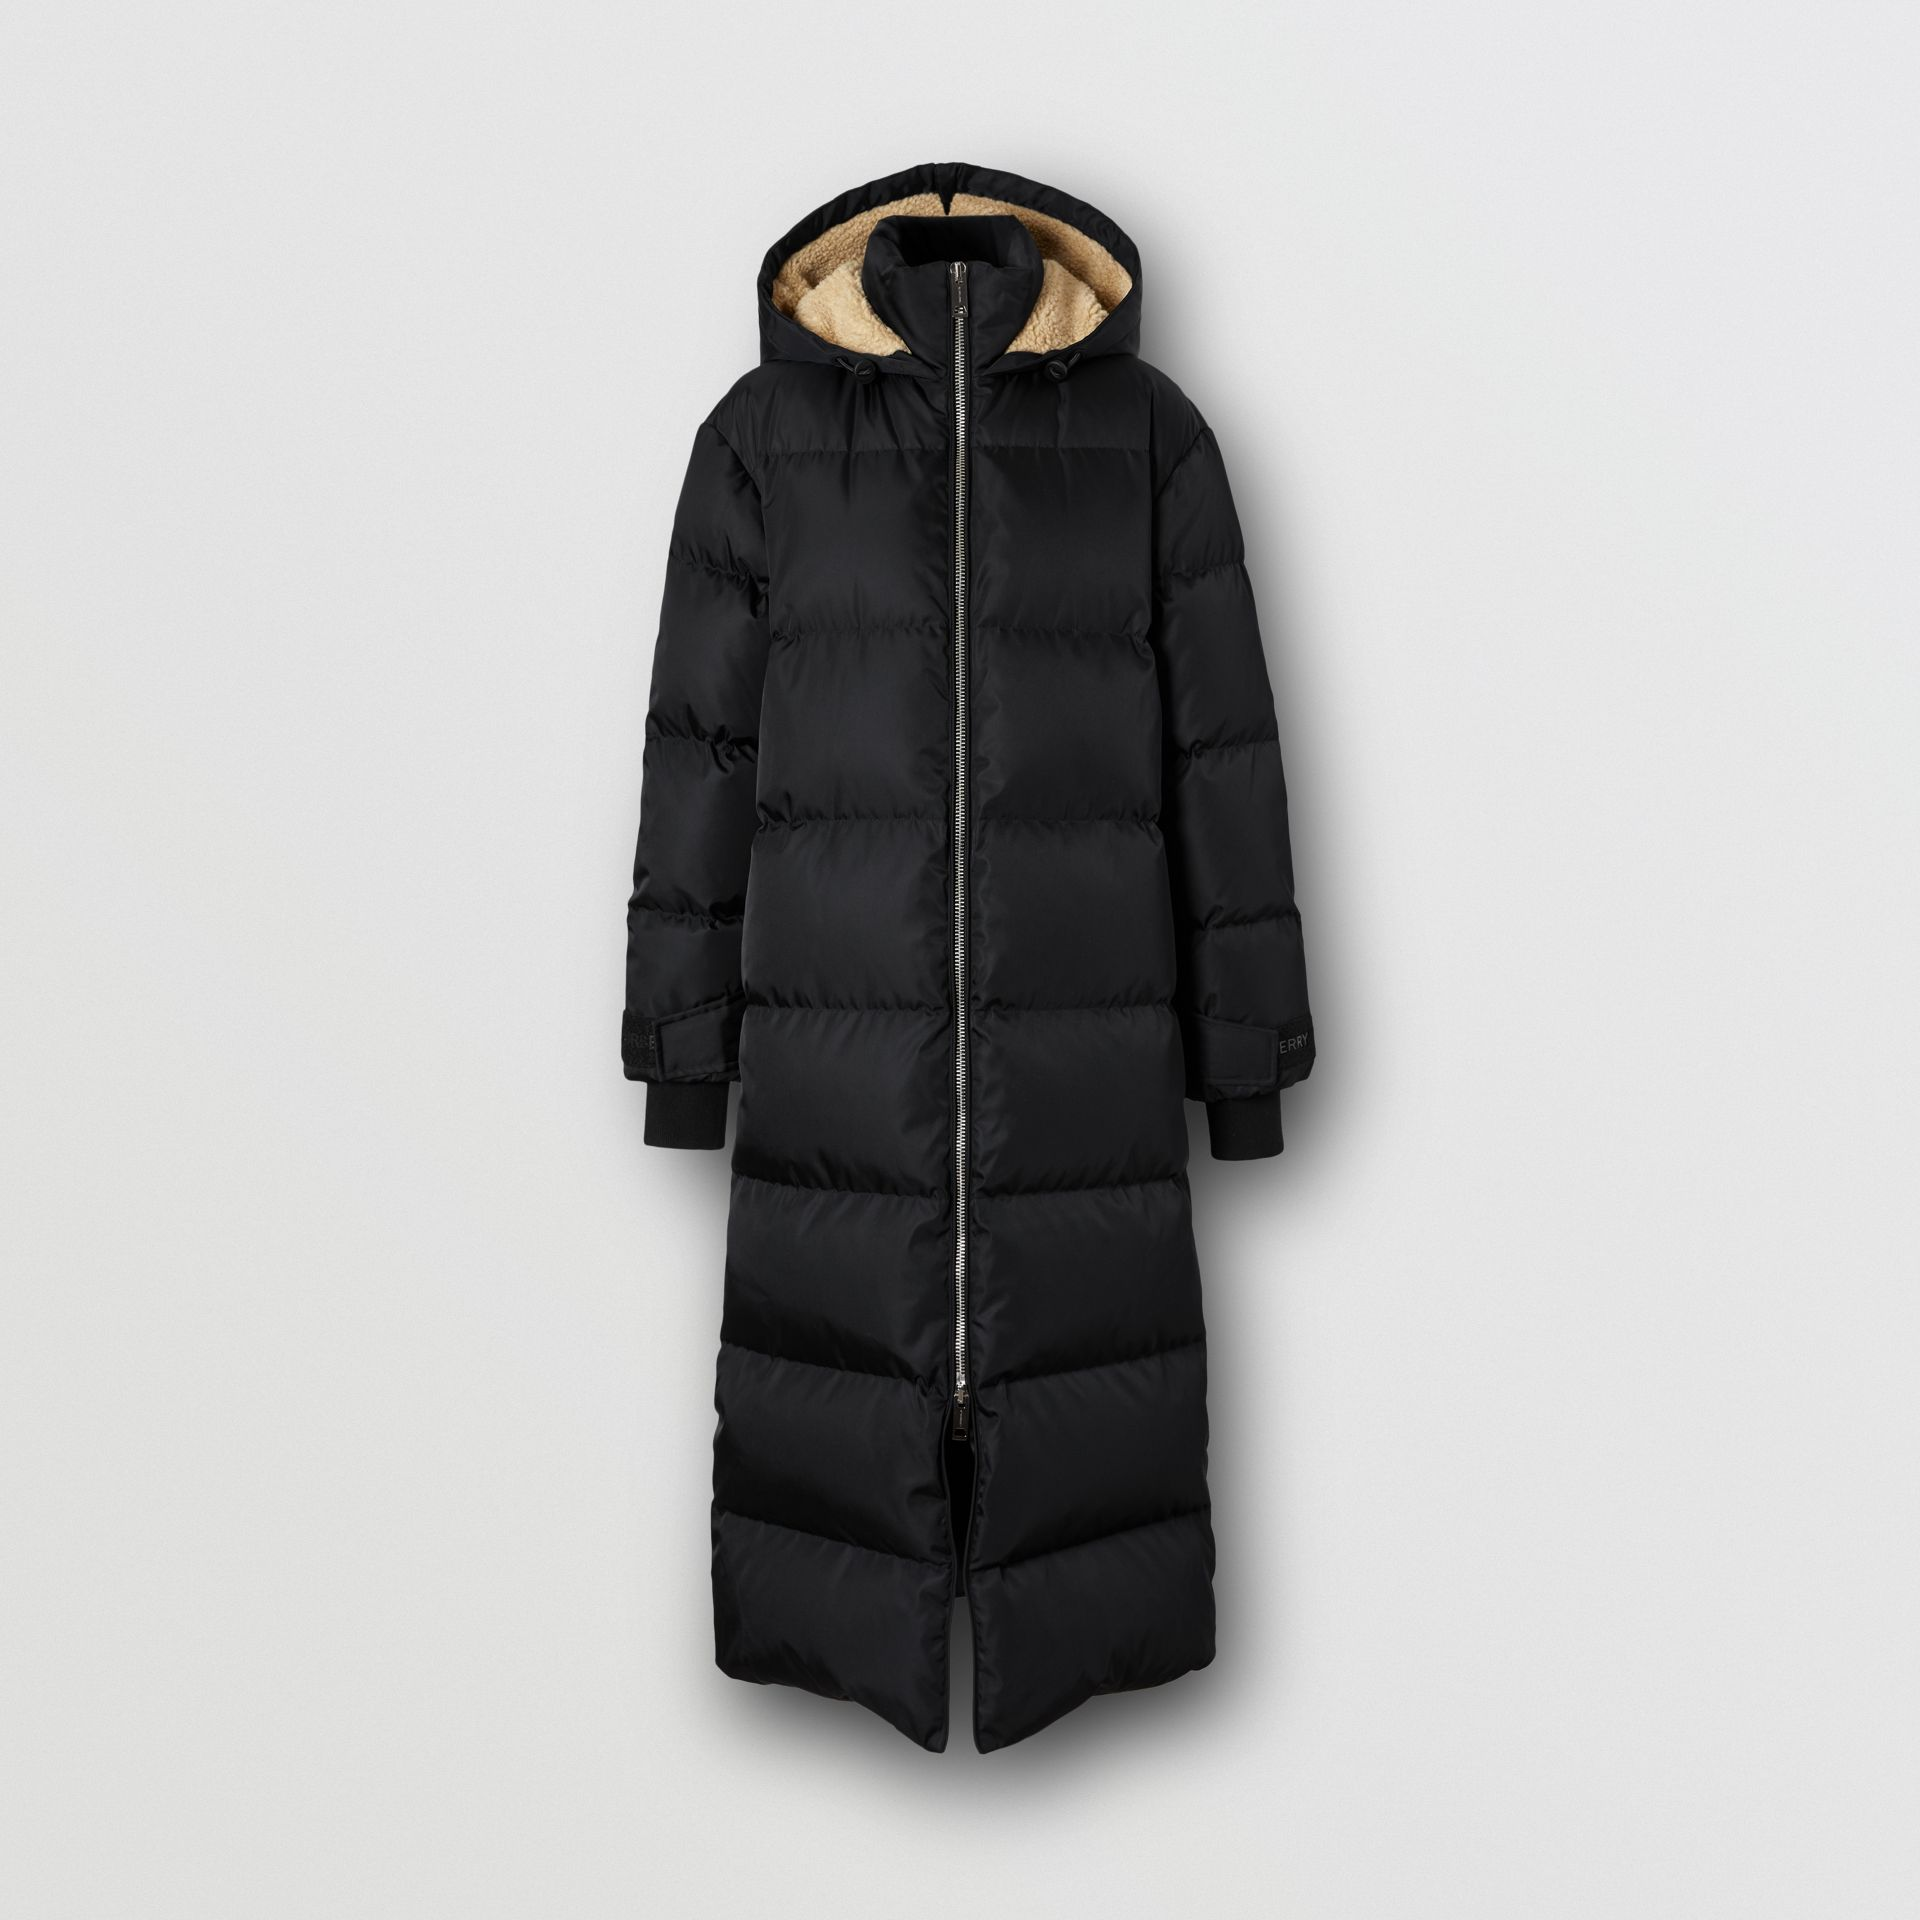 Logo Detail Puffer Coat in Black - Women | Burberry - gallery image 3